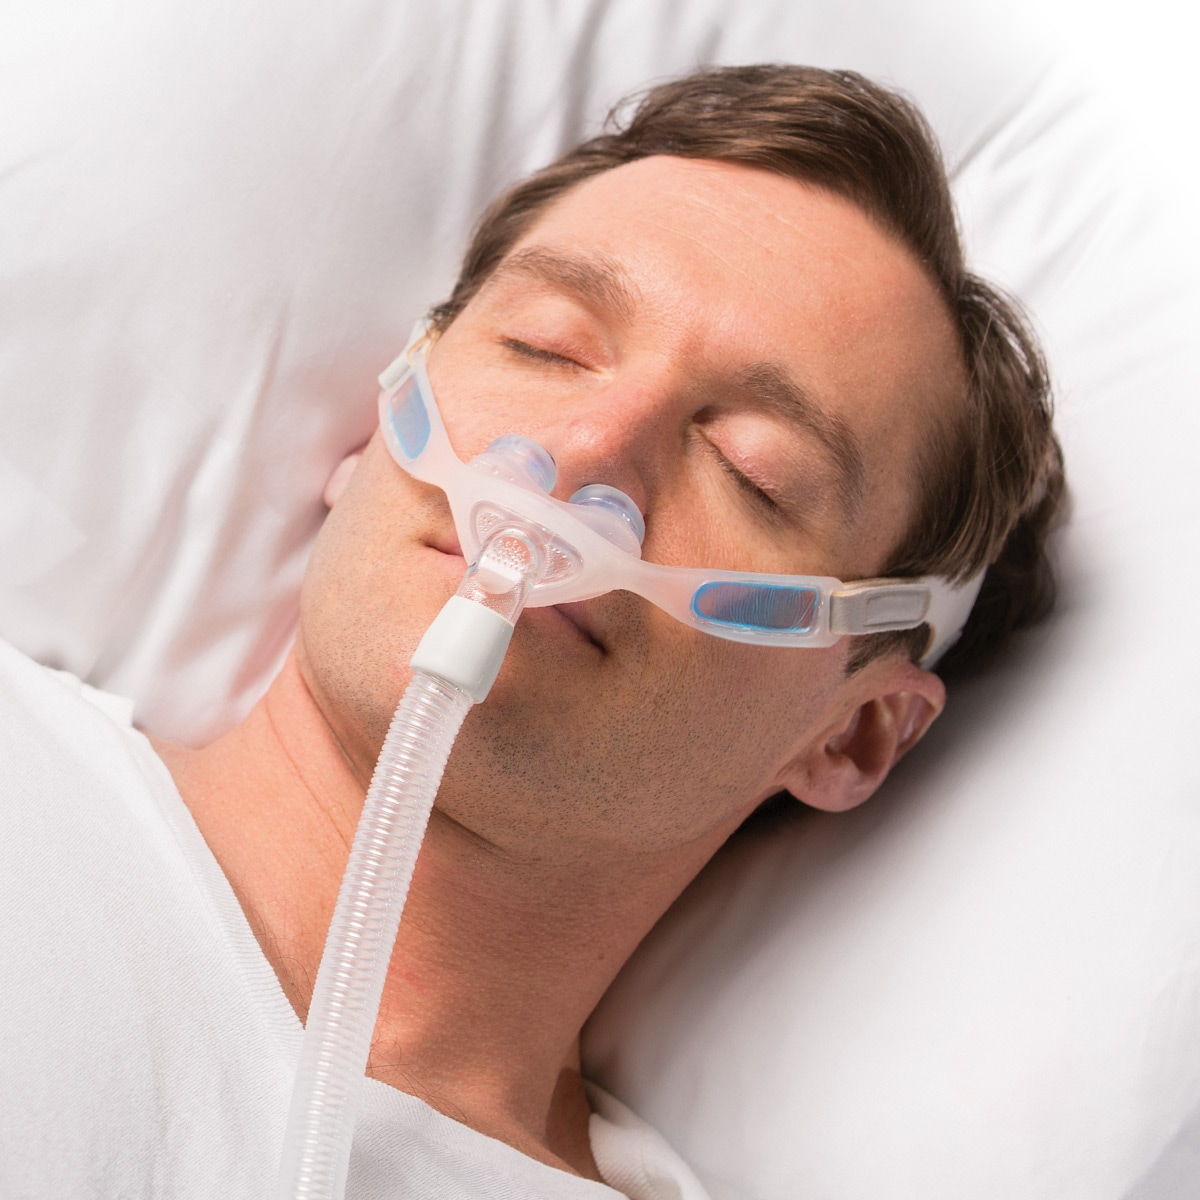 philips respironics nuance fabric or nuance pro gel nasal pillow cpap bipap mask with headgear fitpack s m l